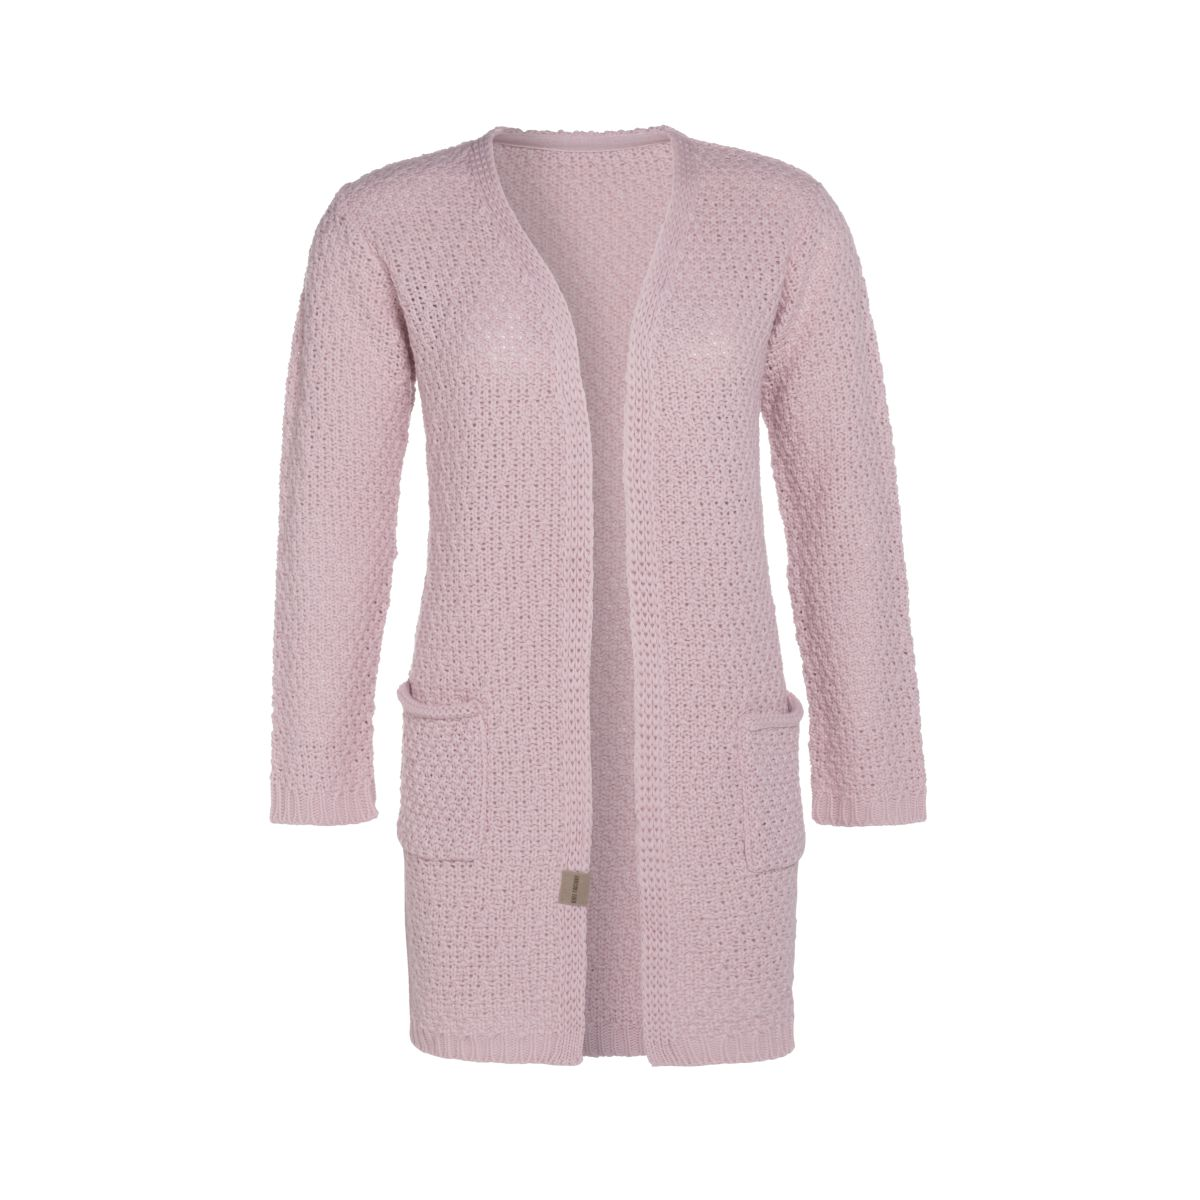 luna knitted cardigan pink 3638 with side pockets